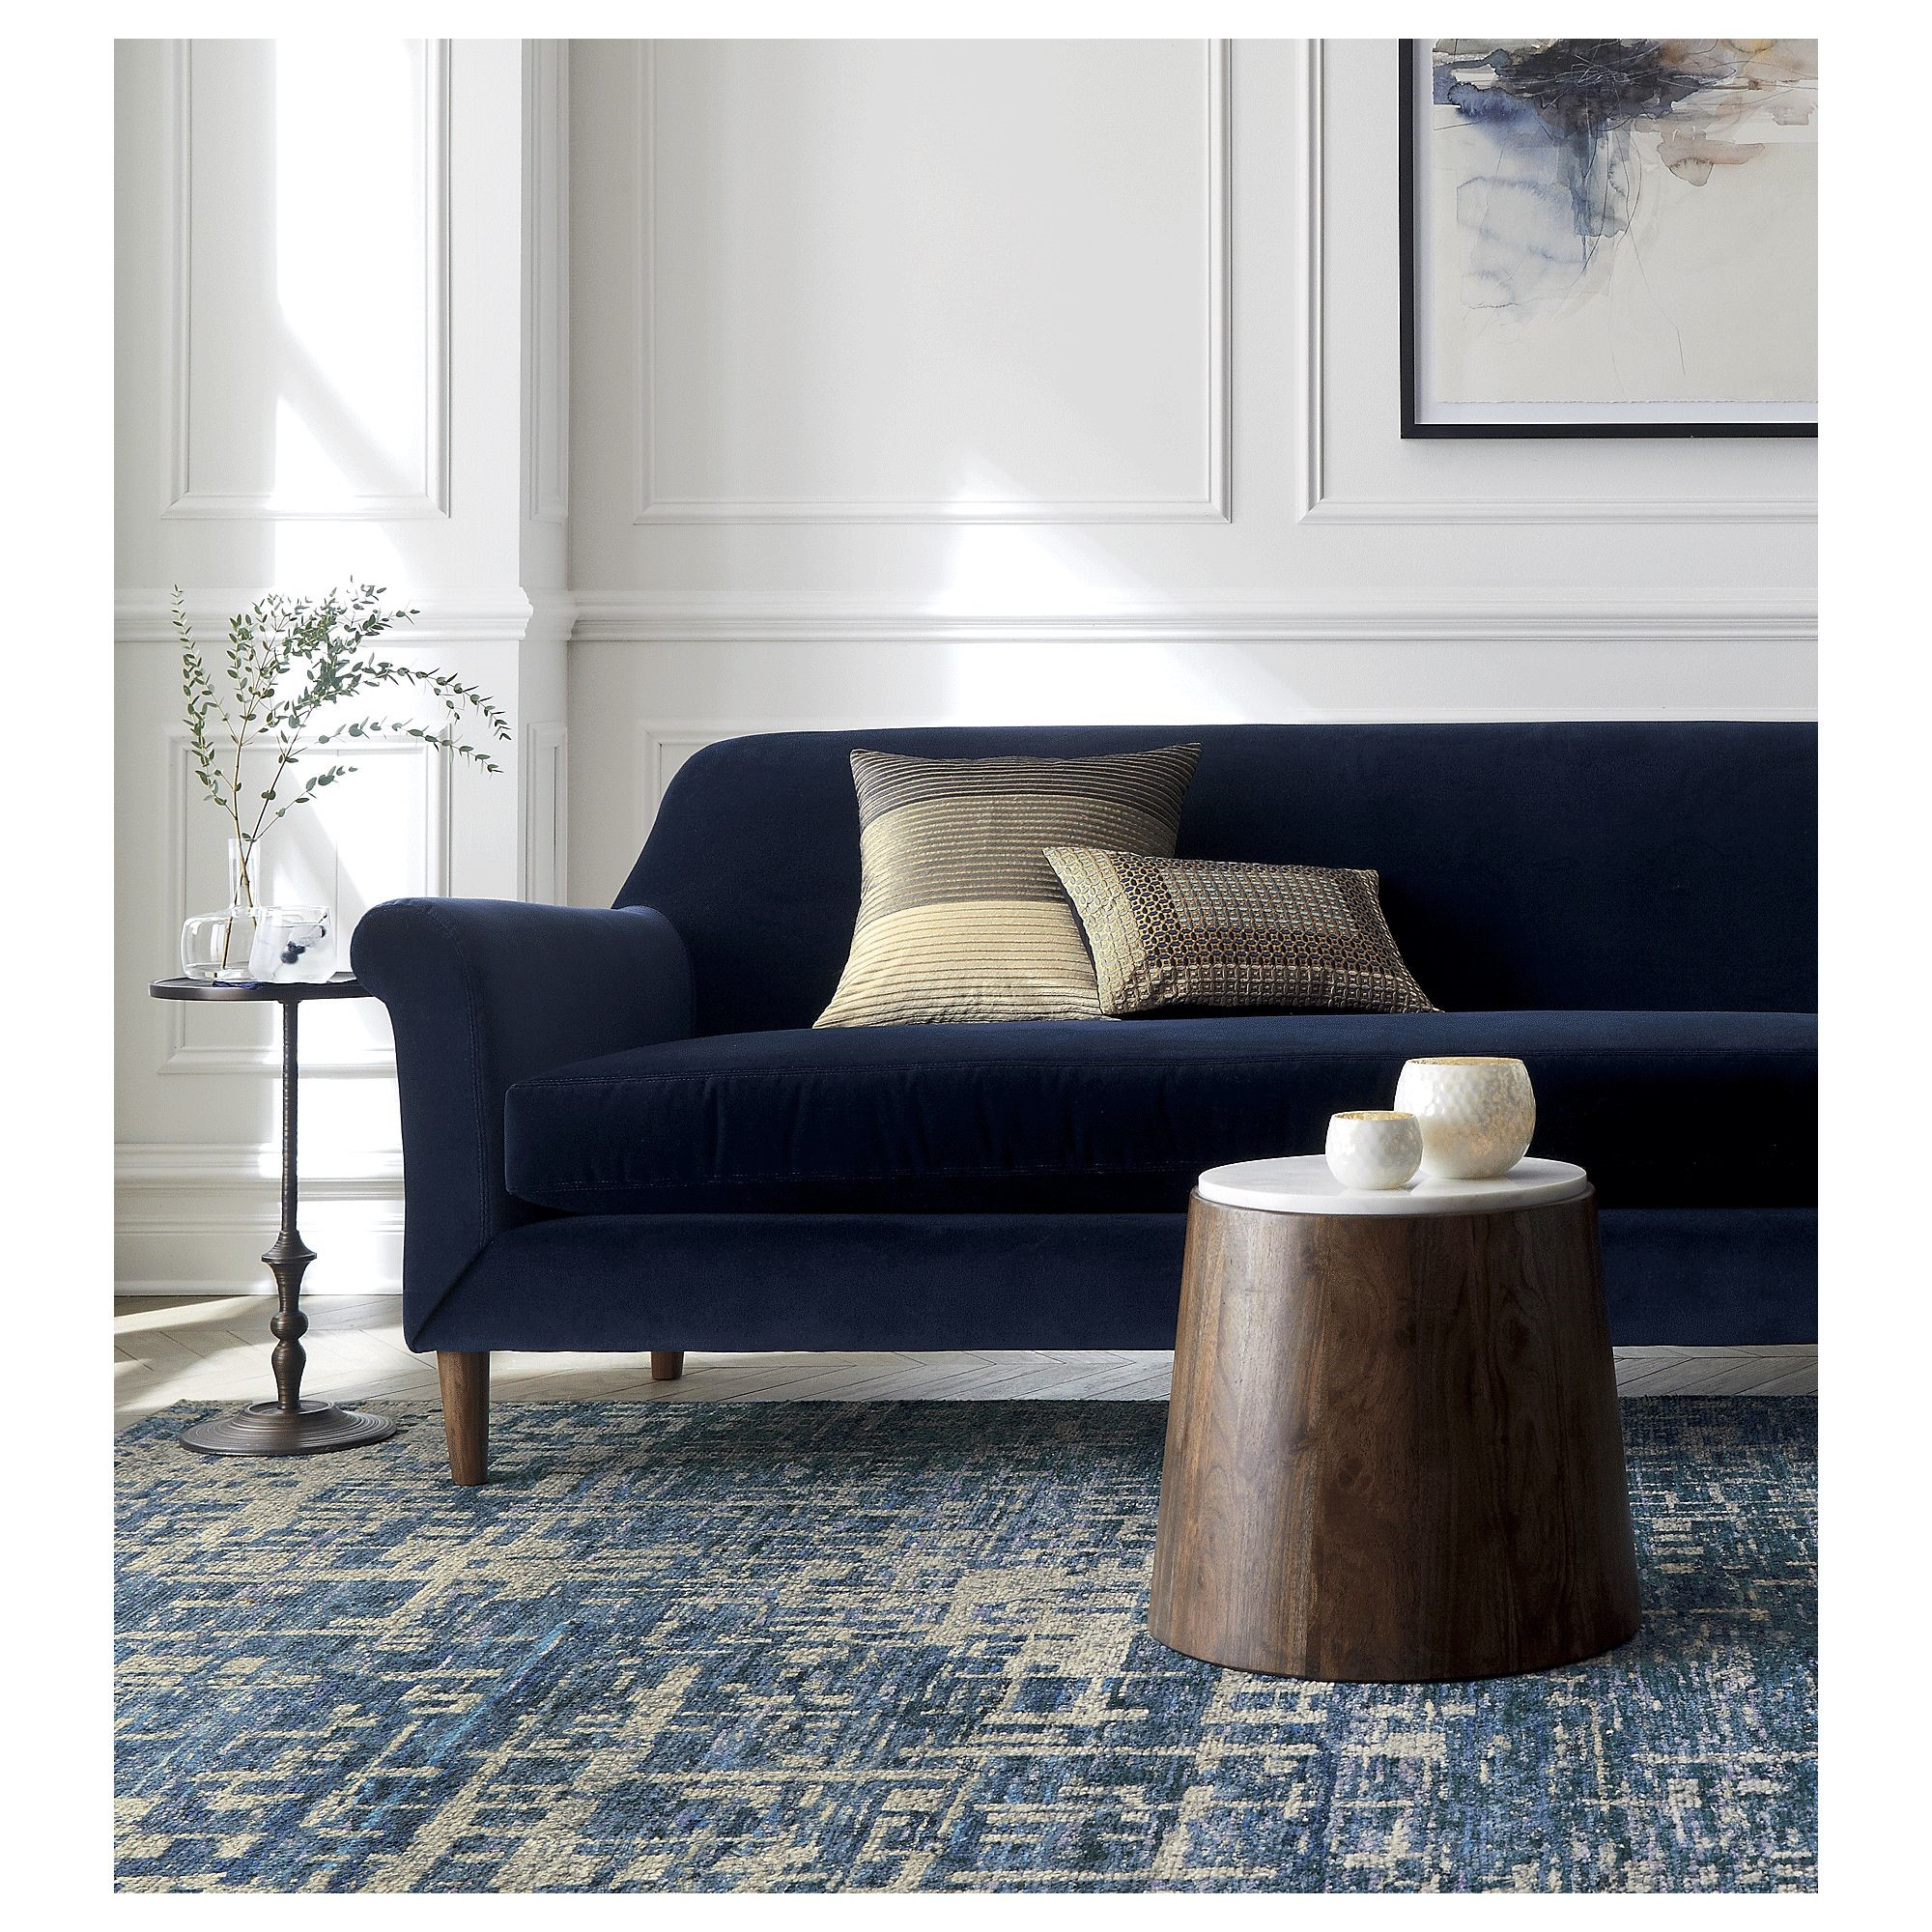 Home Decor Pinterest Trends 2015: Top 10 Home Decor Trends For Fall 2018